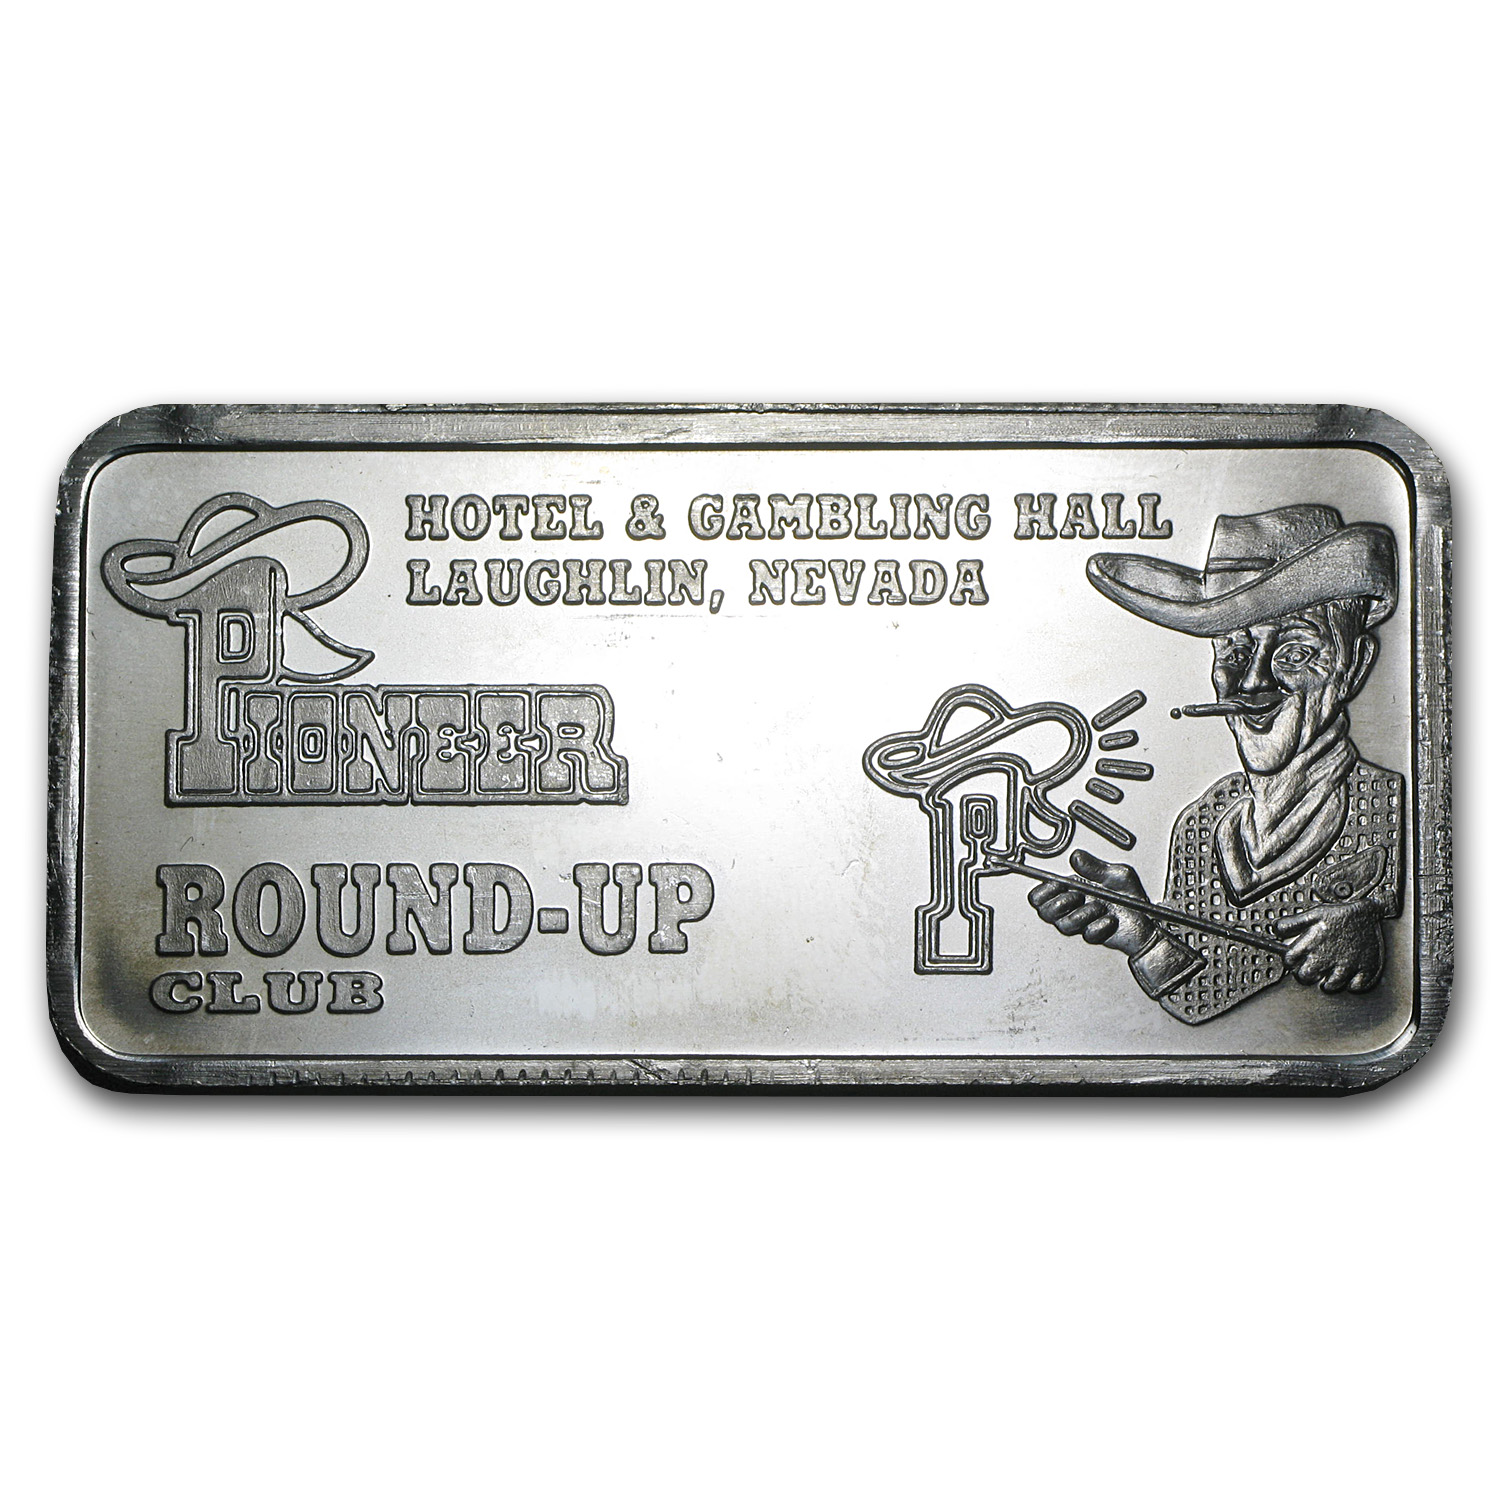 5 oz Silver Bars - APM (Round-Up Club)